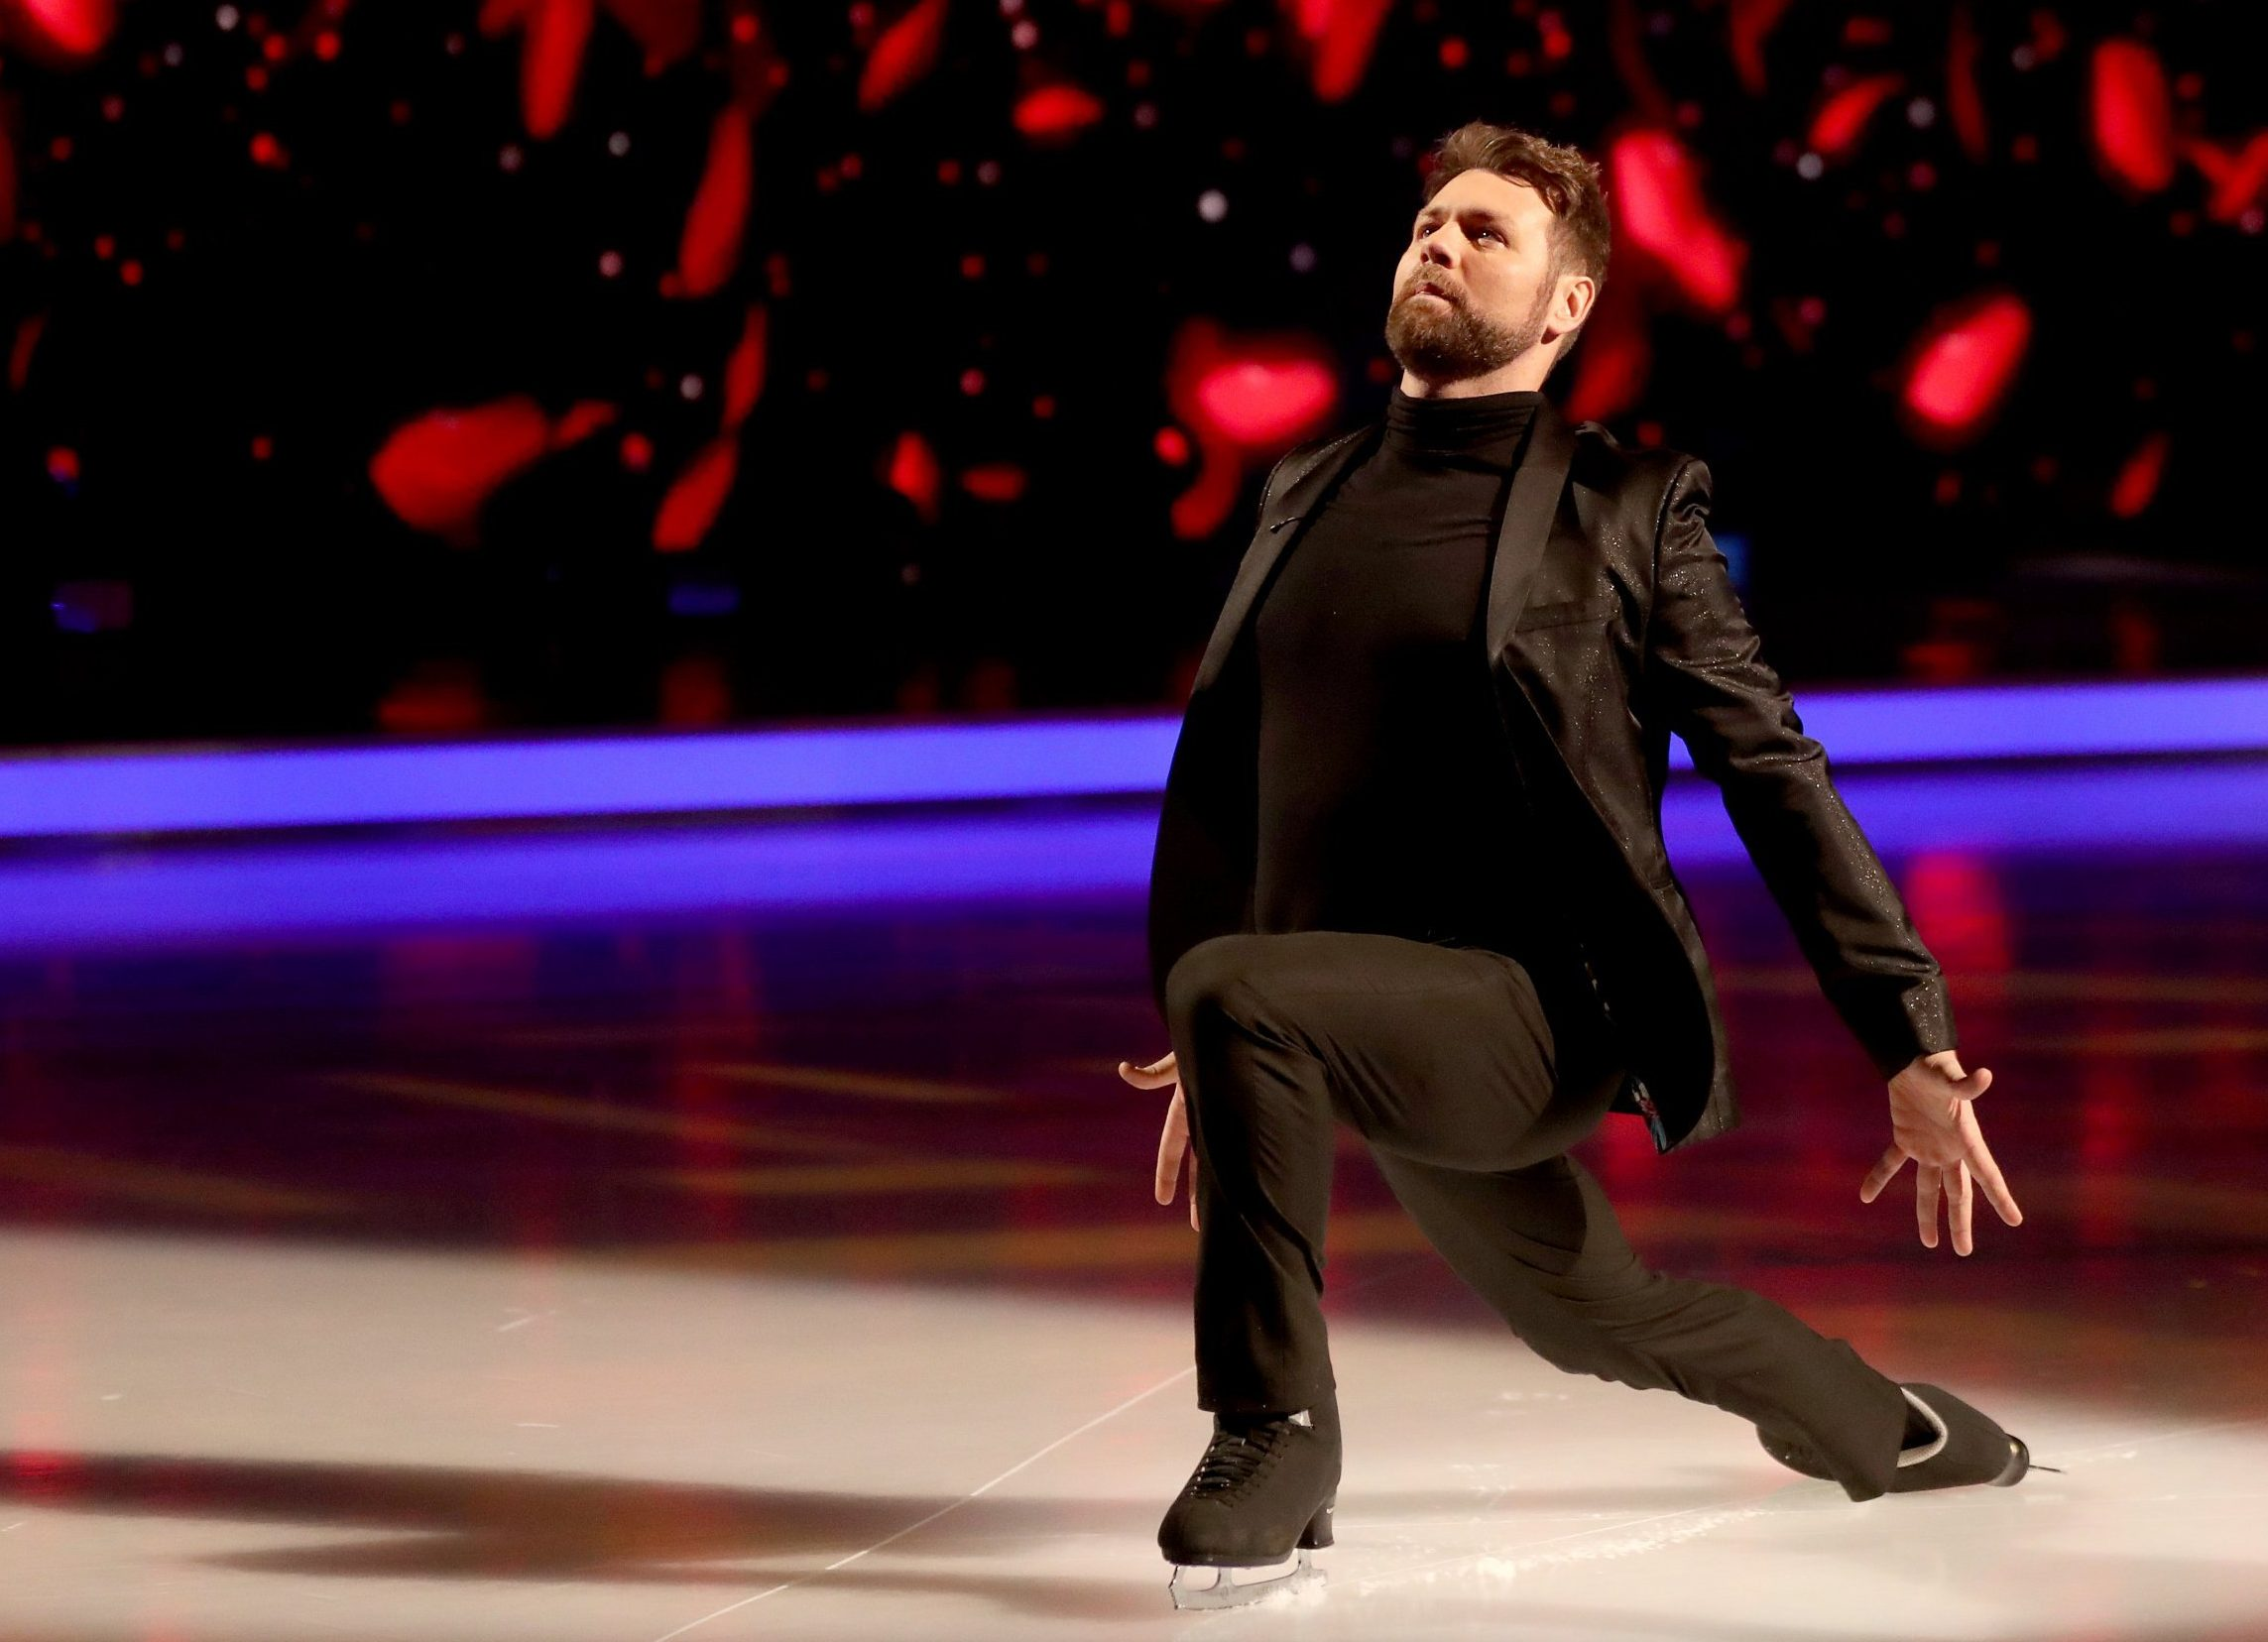 Brian McFadden threatened with early exit from Dancing On Ice as he struggles with 'a lot of shoulder pain'